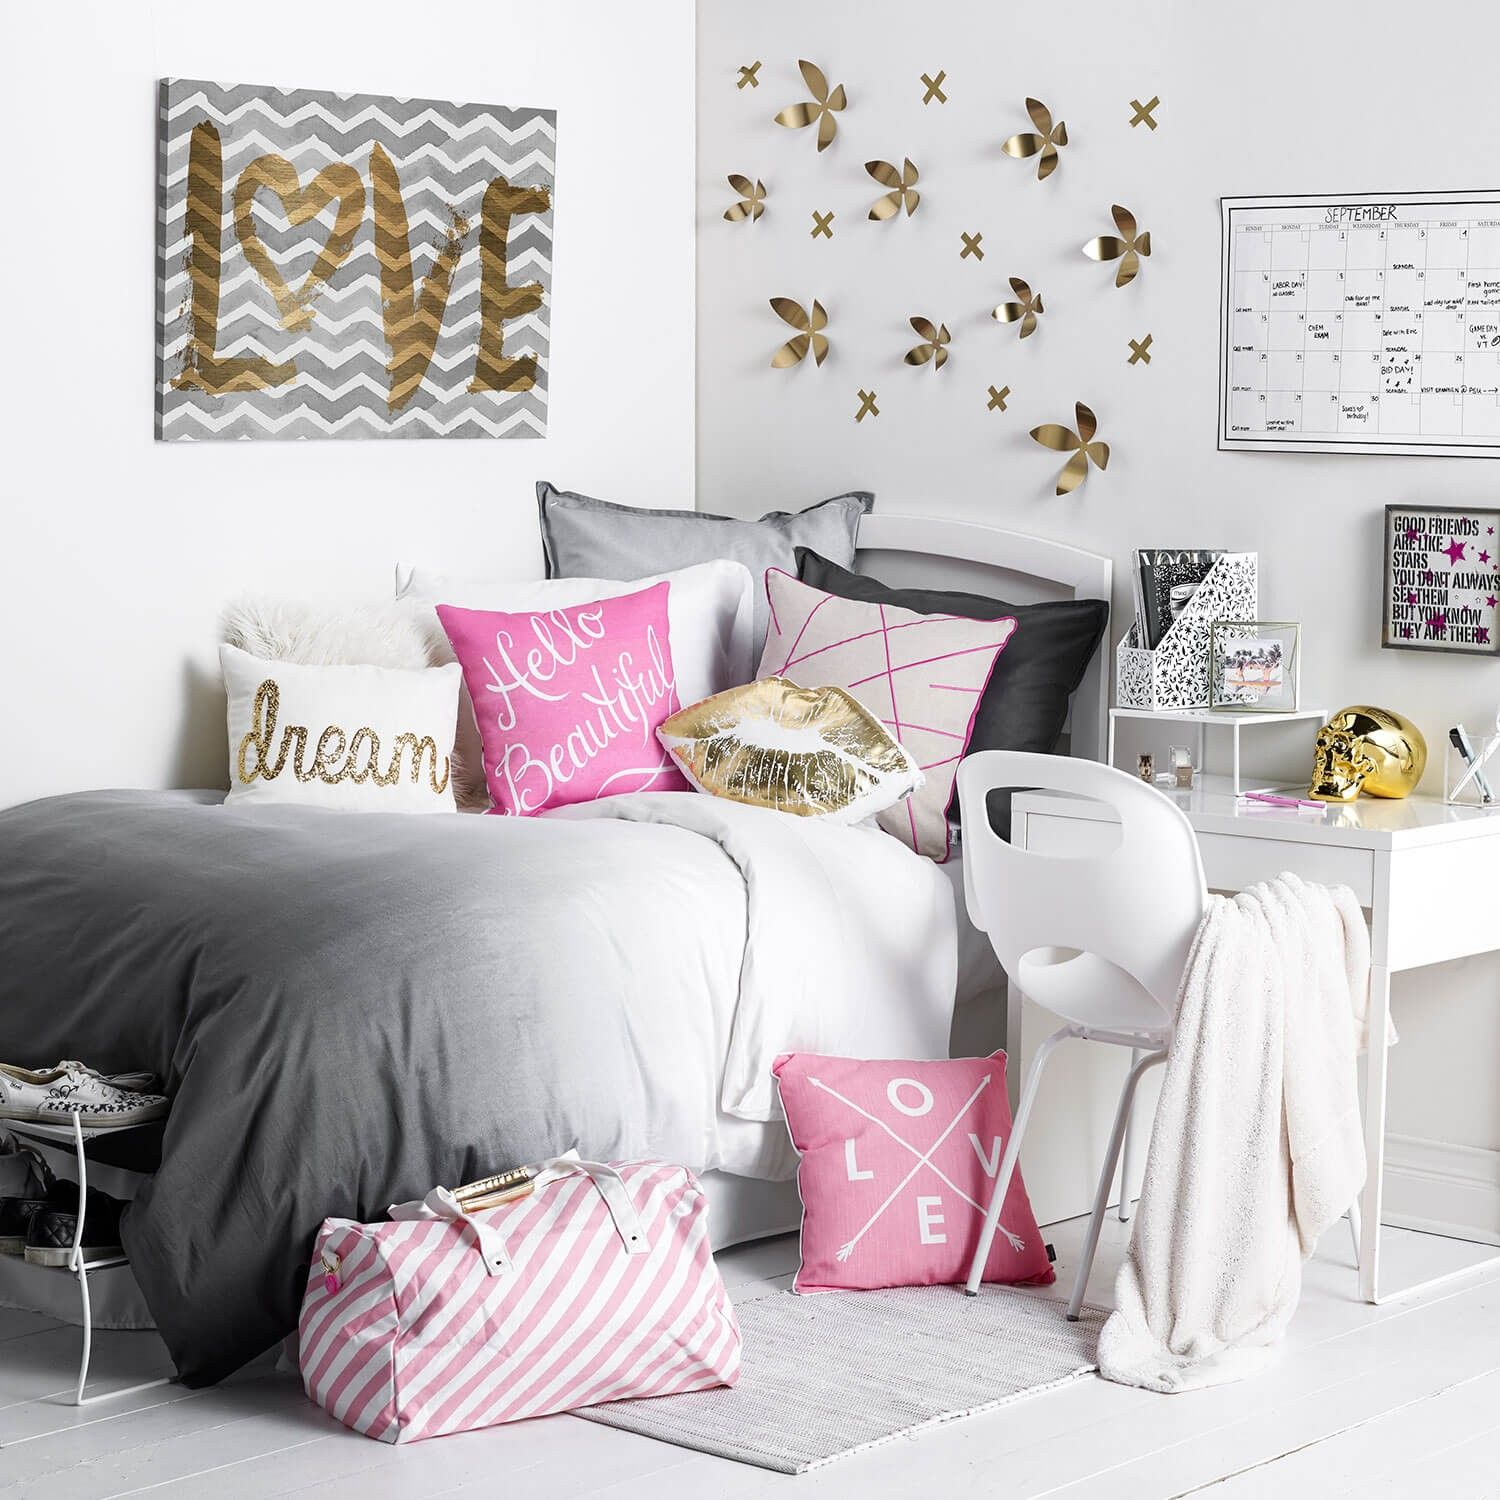 uptown girl room | available on dormify | dorm bedding loves